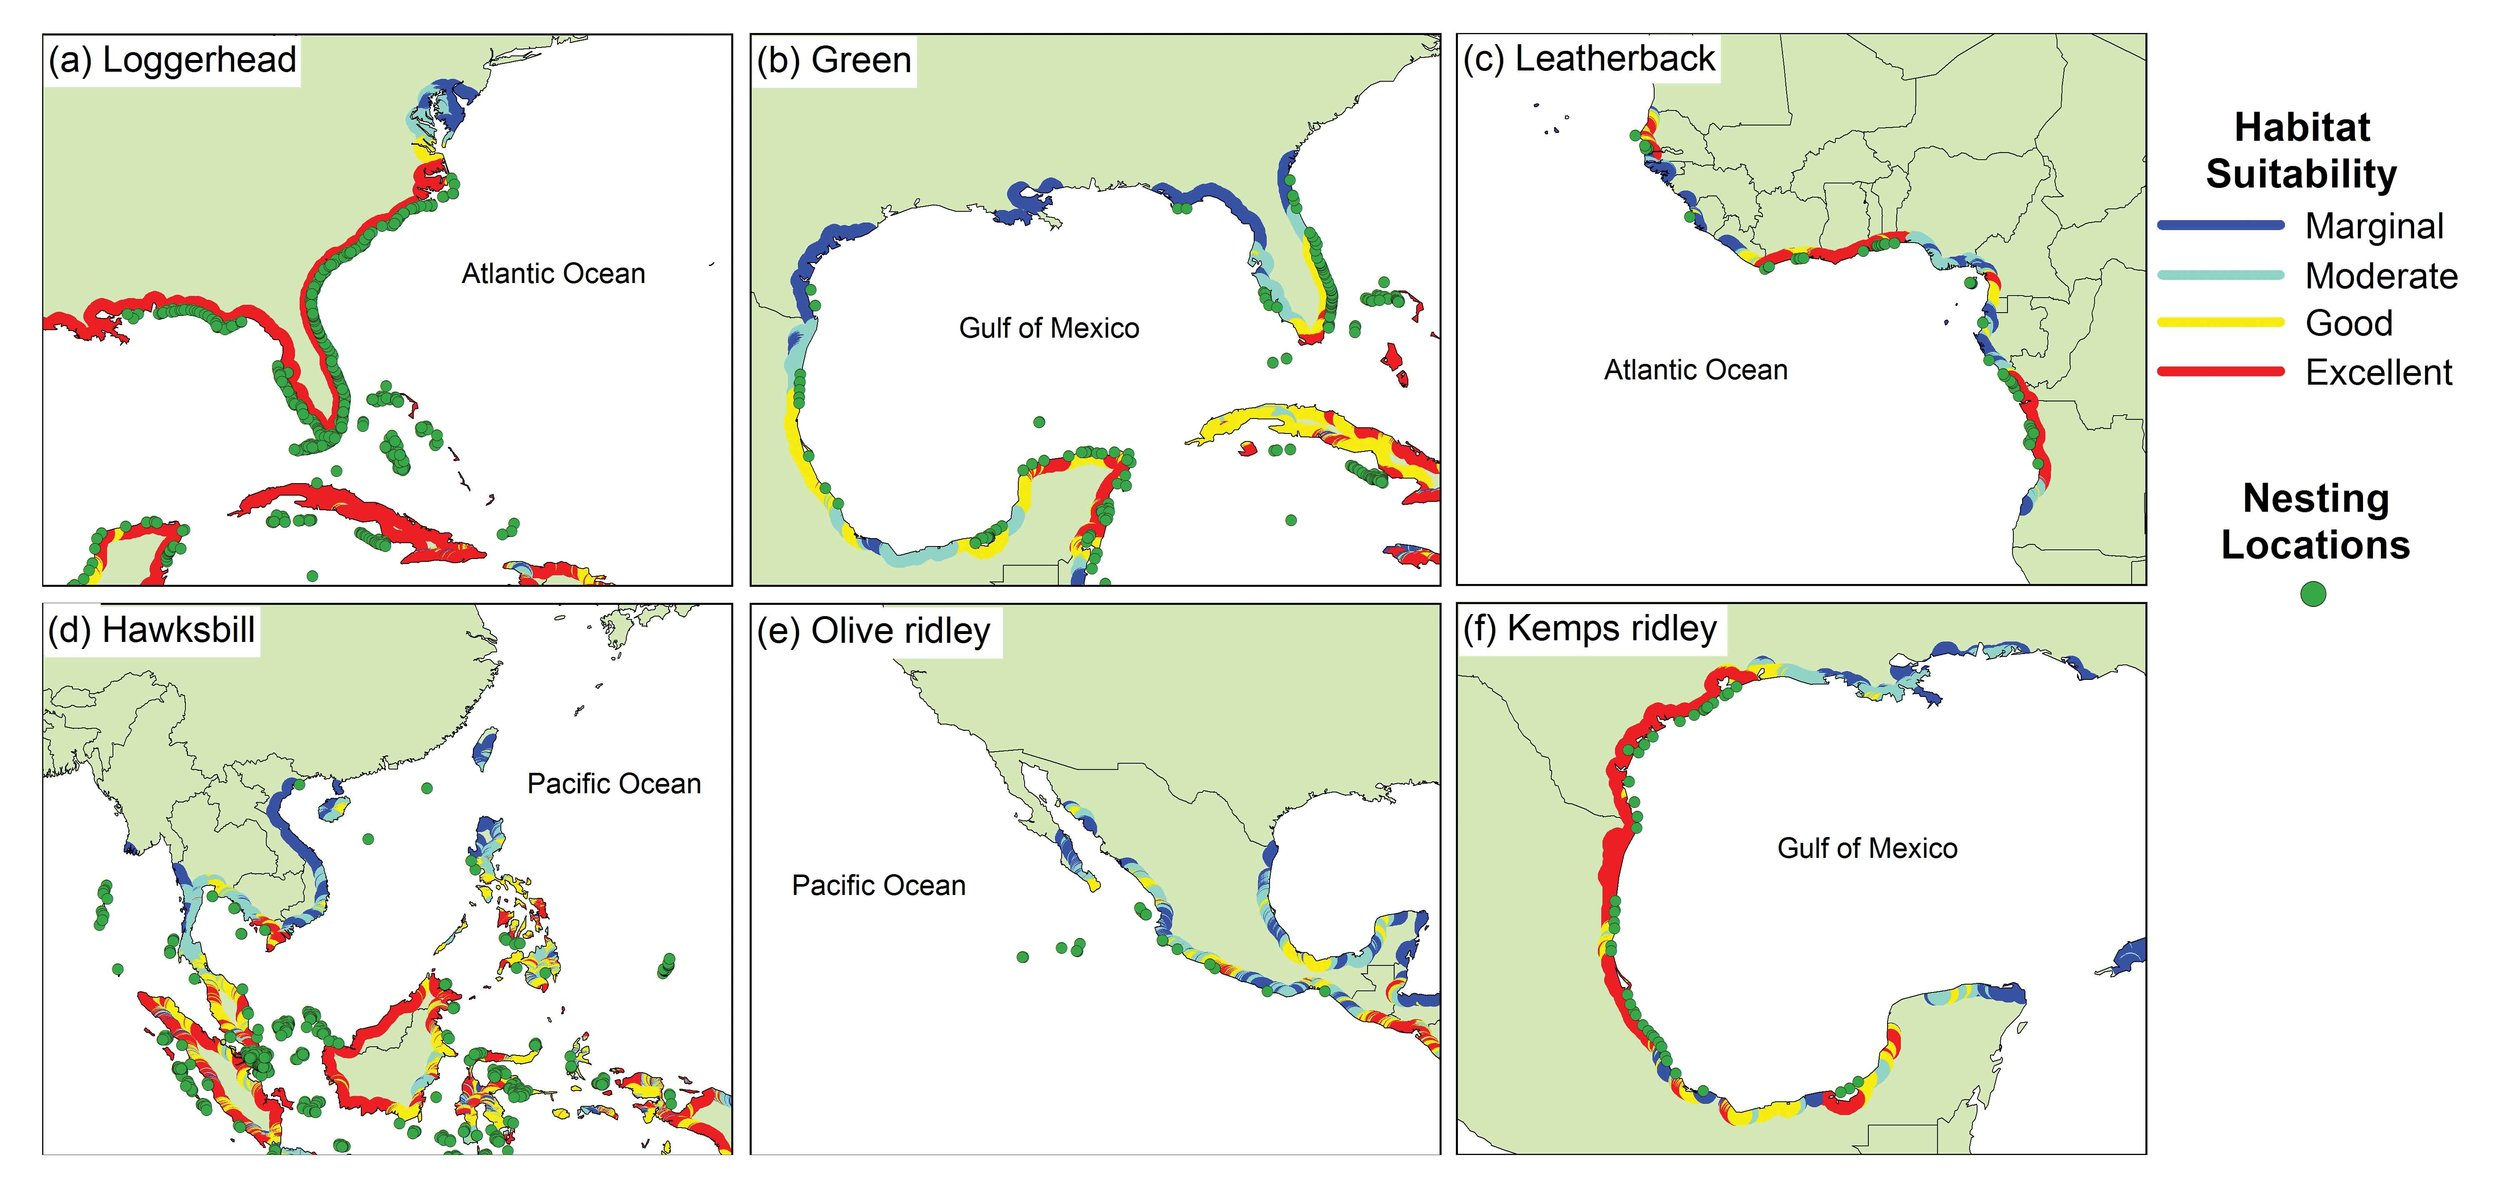 From Pike, D. A. 2013. Climate influences the global distribution of sea turtle nesting.  Global Ecology and Biogeography  22: 555–556.